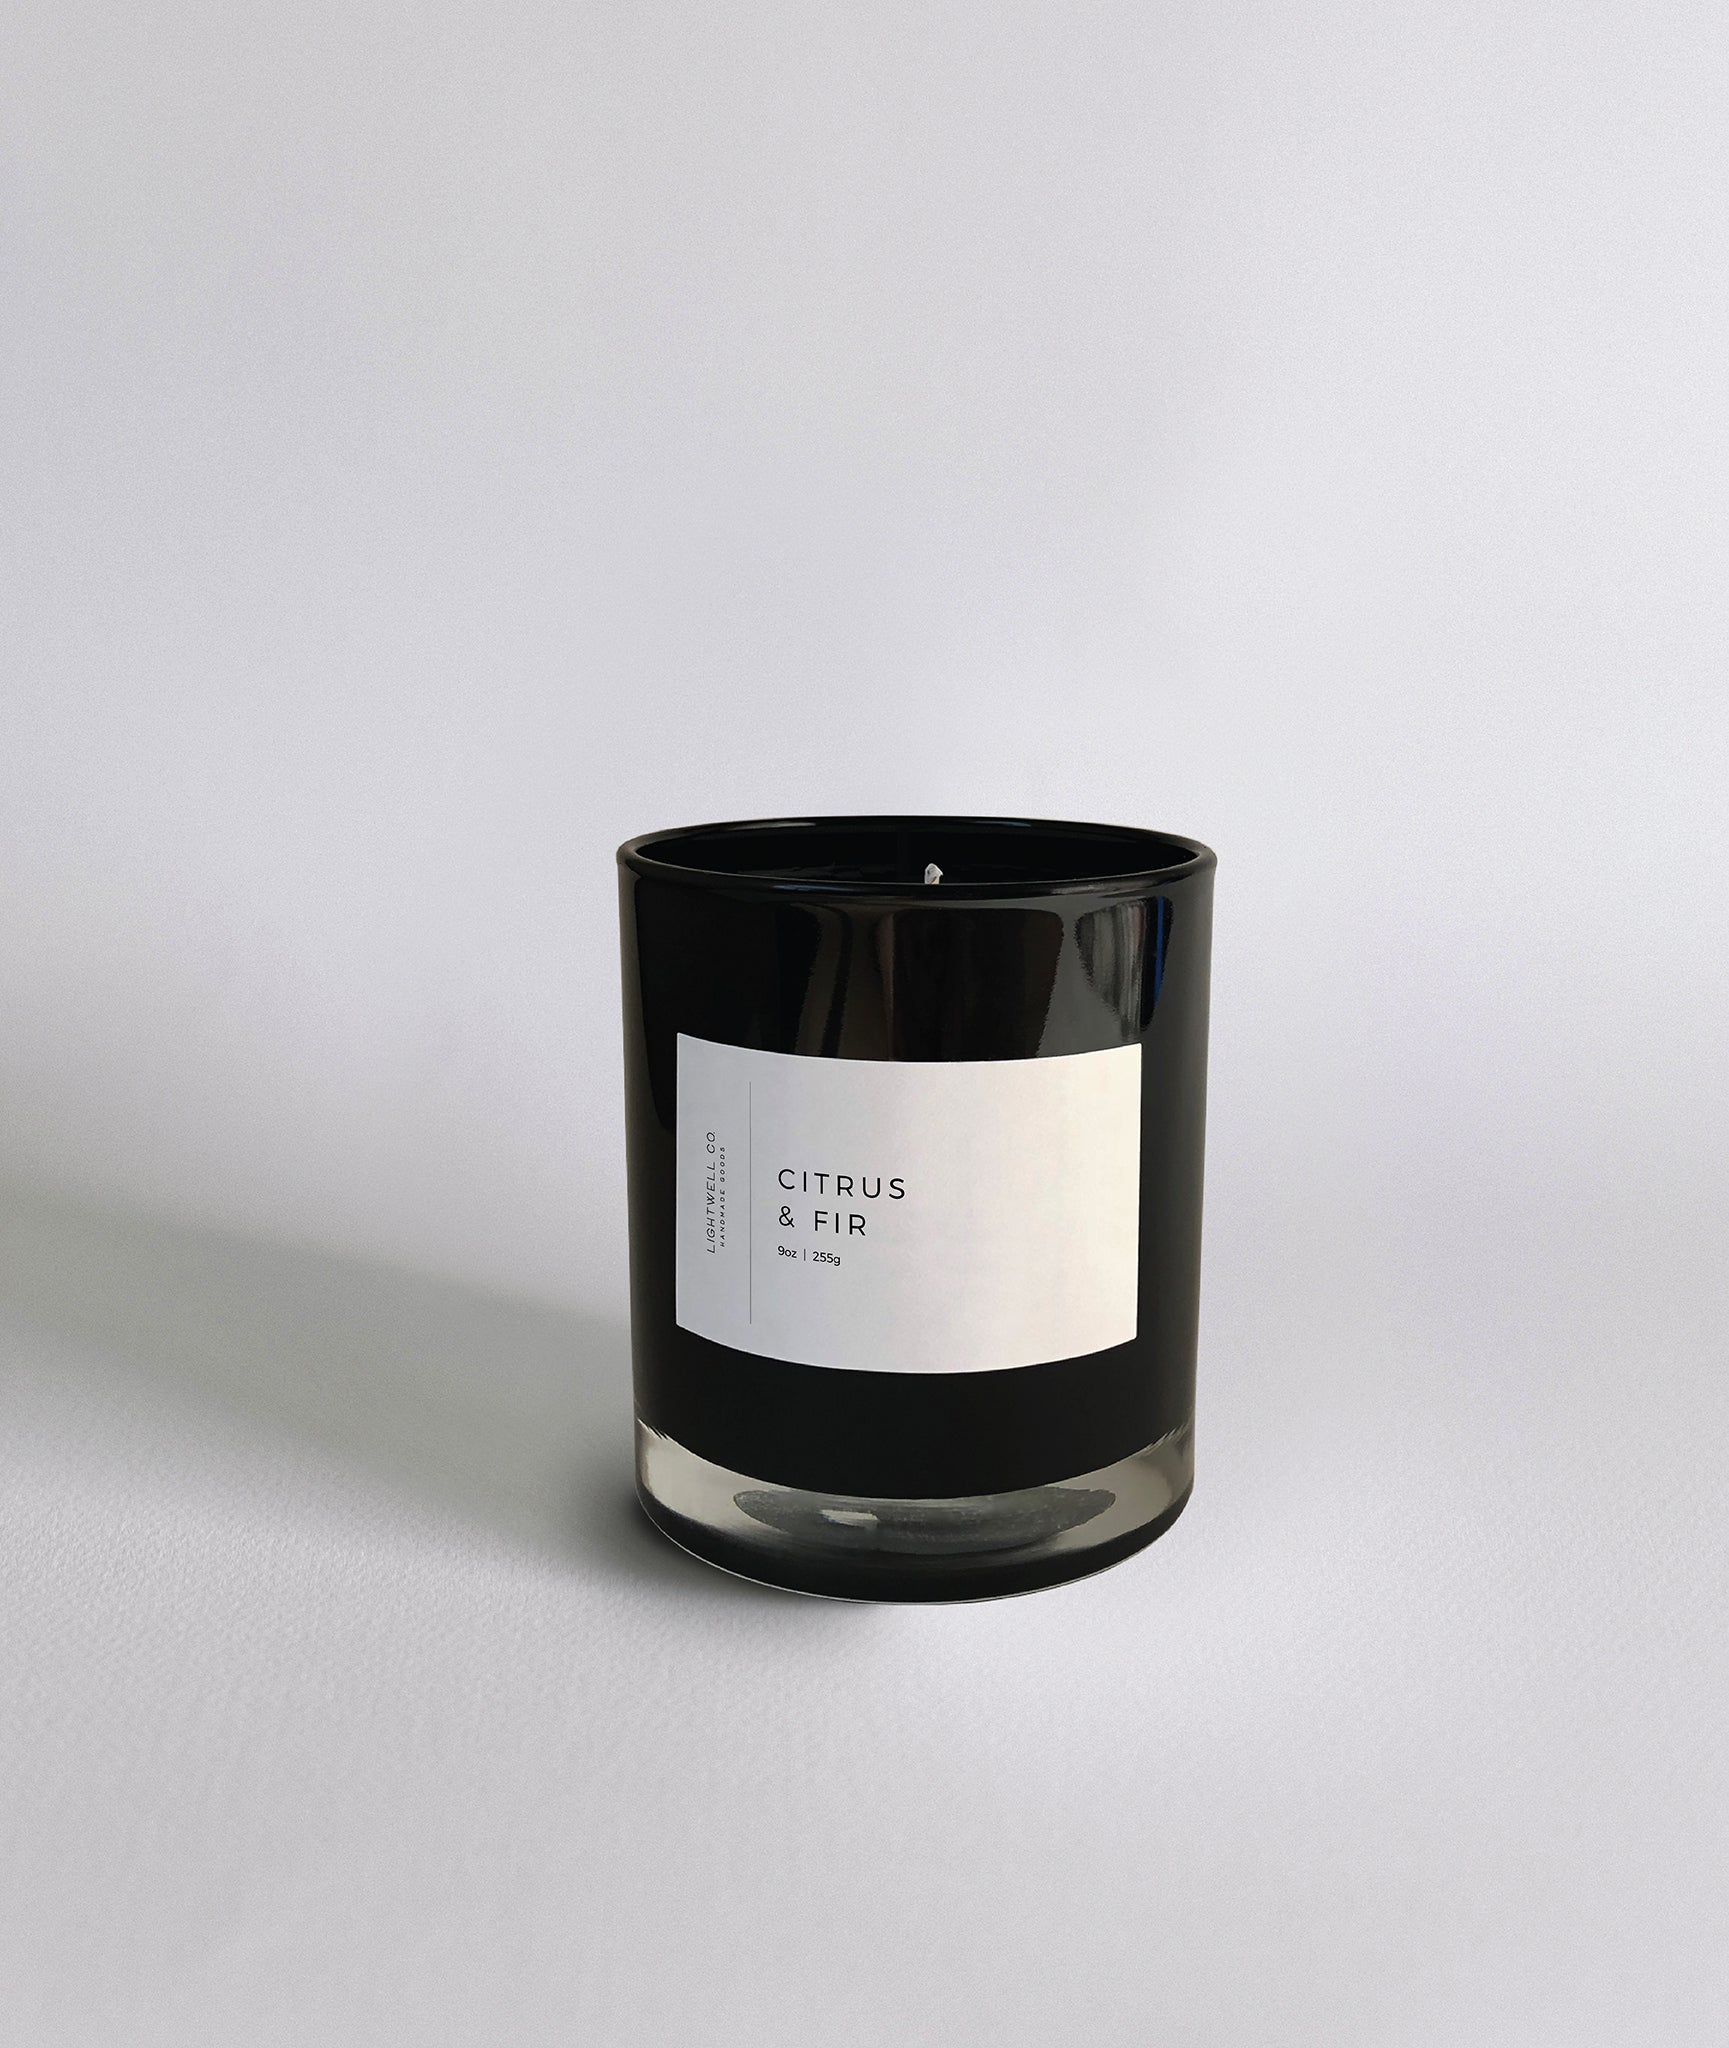 Citrus & Fir Black Tumbler